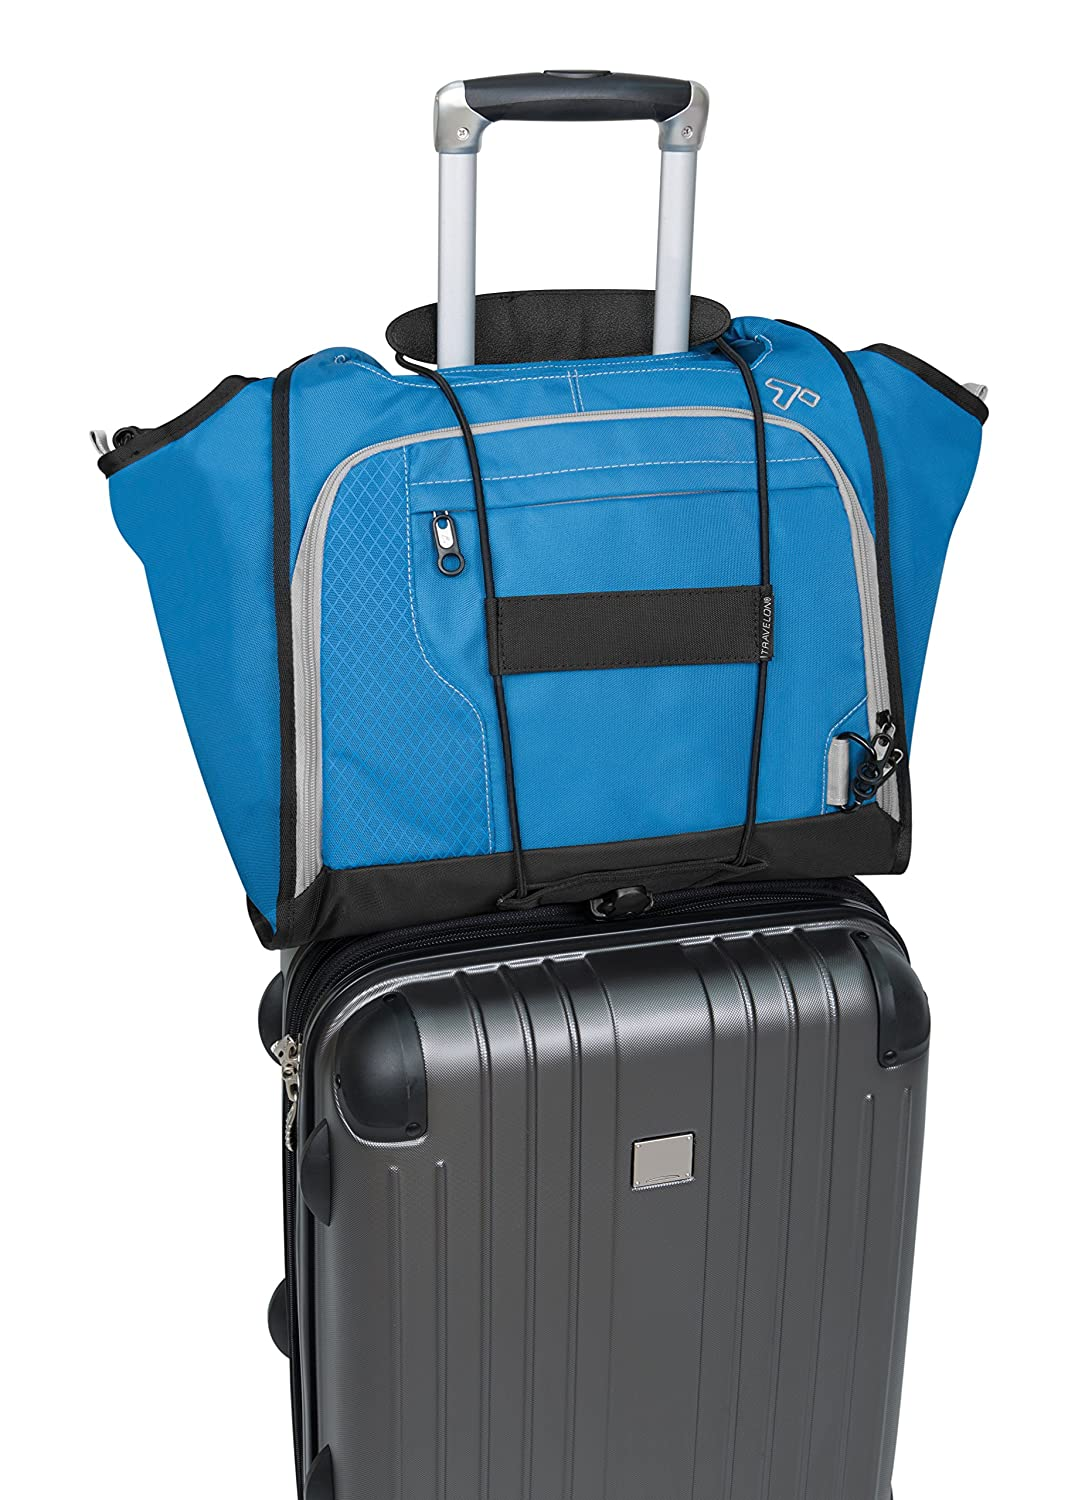 Travelon Bag Bungee One Size, Charcoal